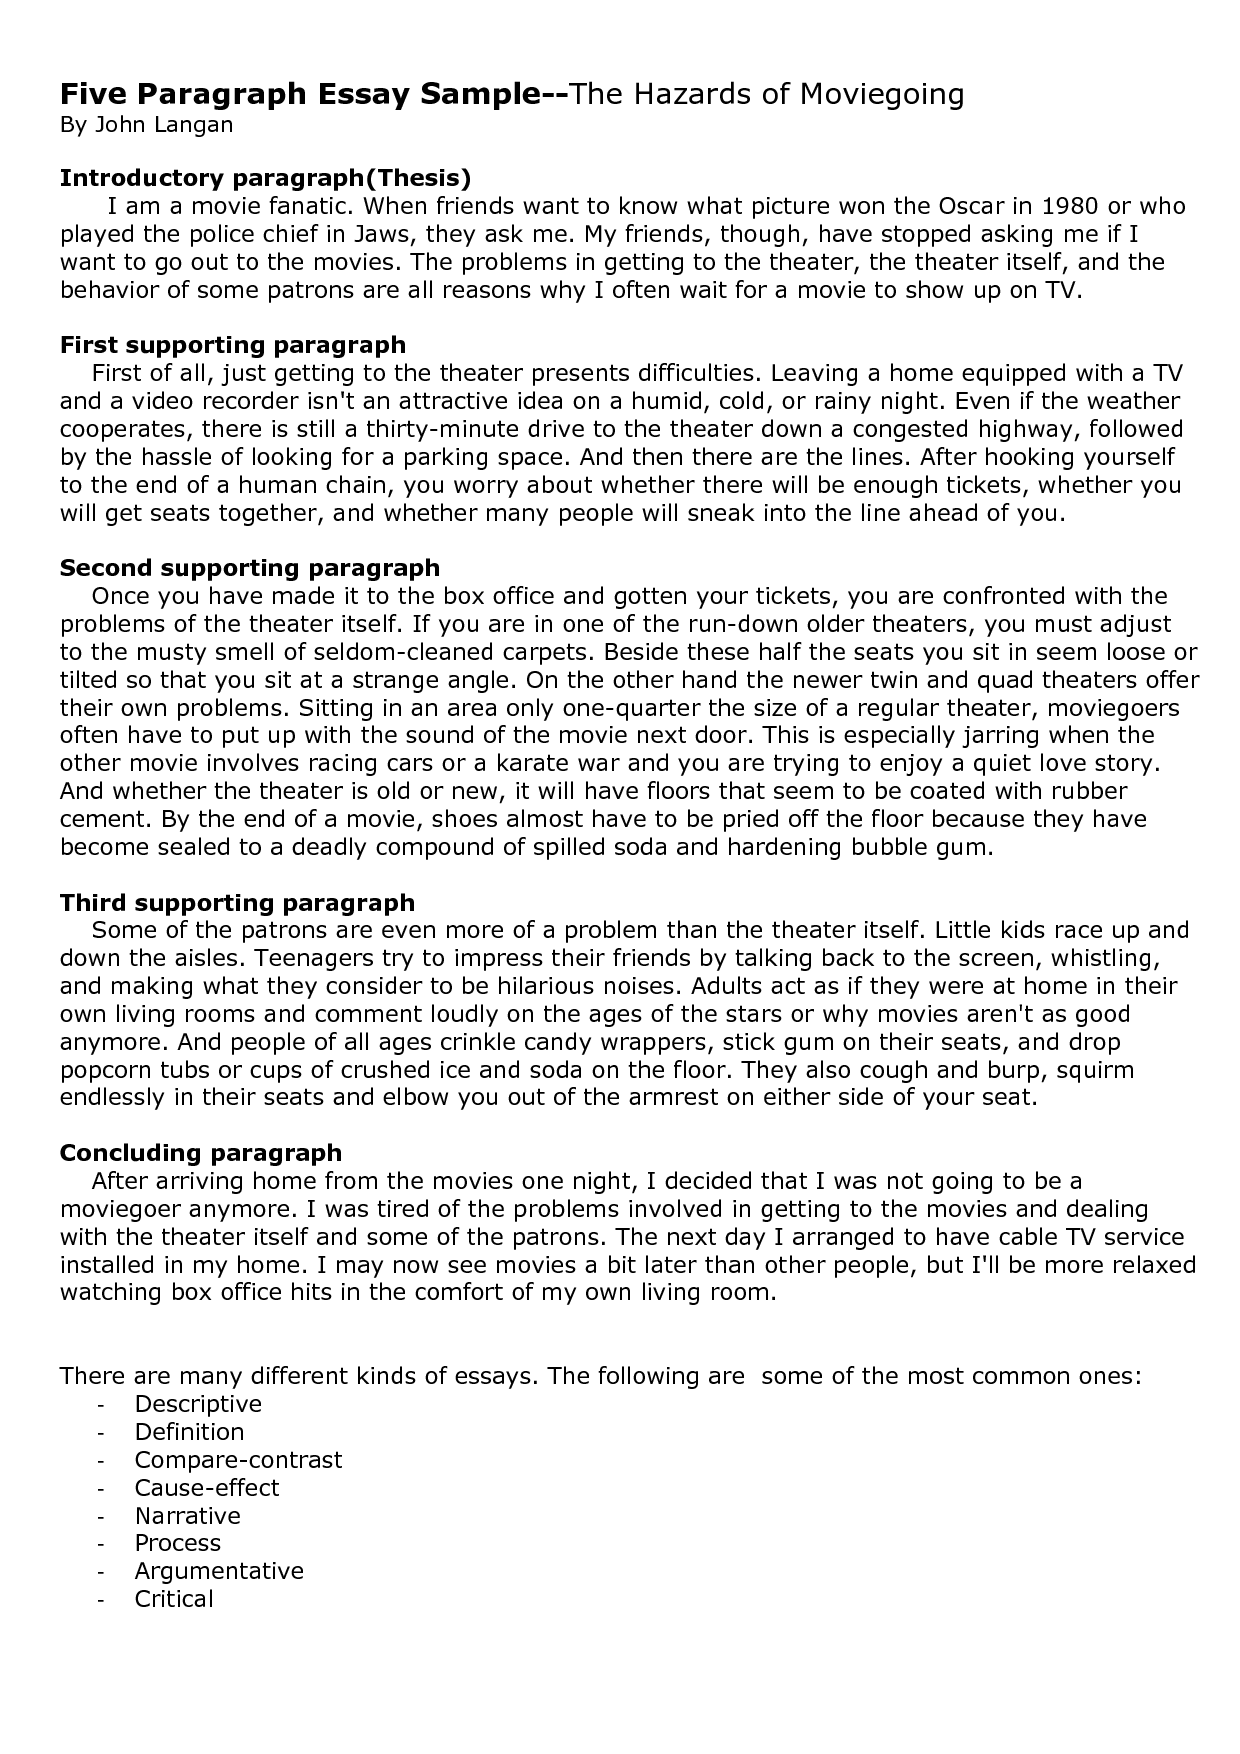 015 Essayample Who Am Iamples Intro Help Cover Letter Of Argumentative College Pdf U2shu Paragraph Writing Sample Download Middle School Format Gre Argument Short Amazing I Essay Examples For Students How To Write A Good 'who I' Full